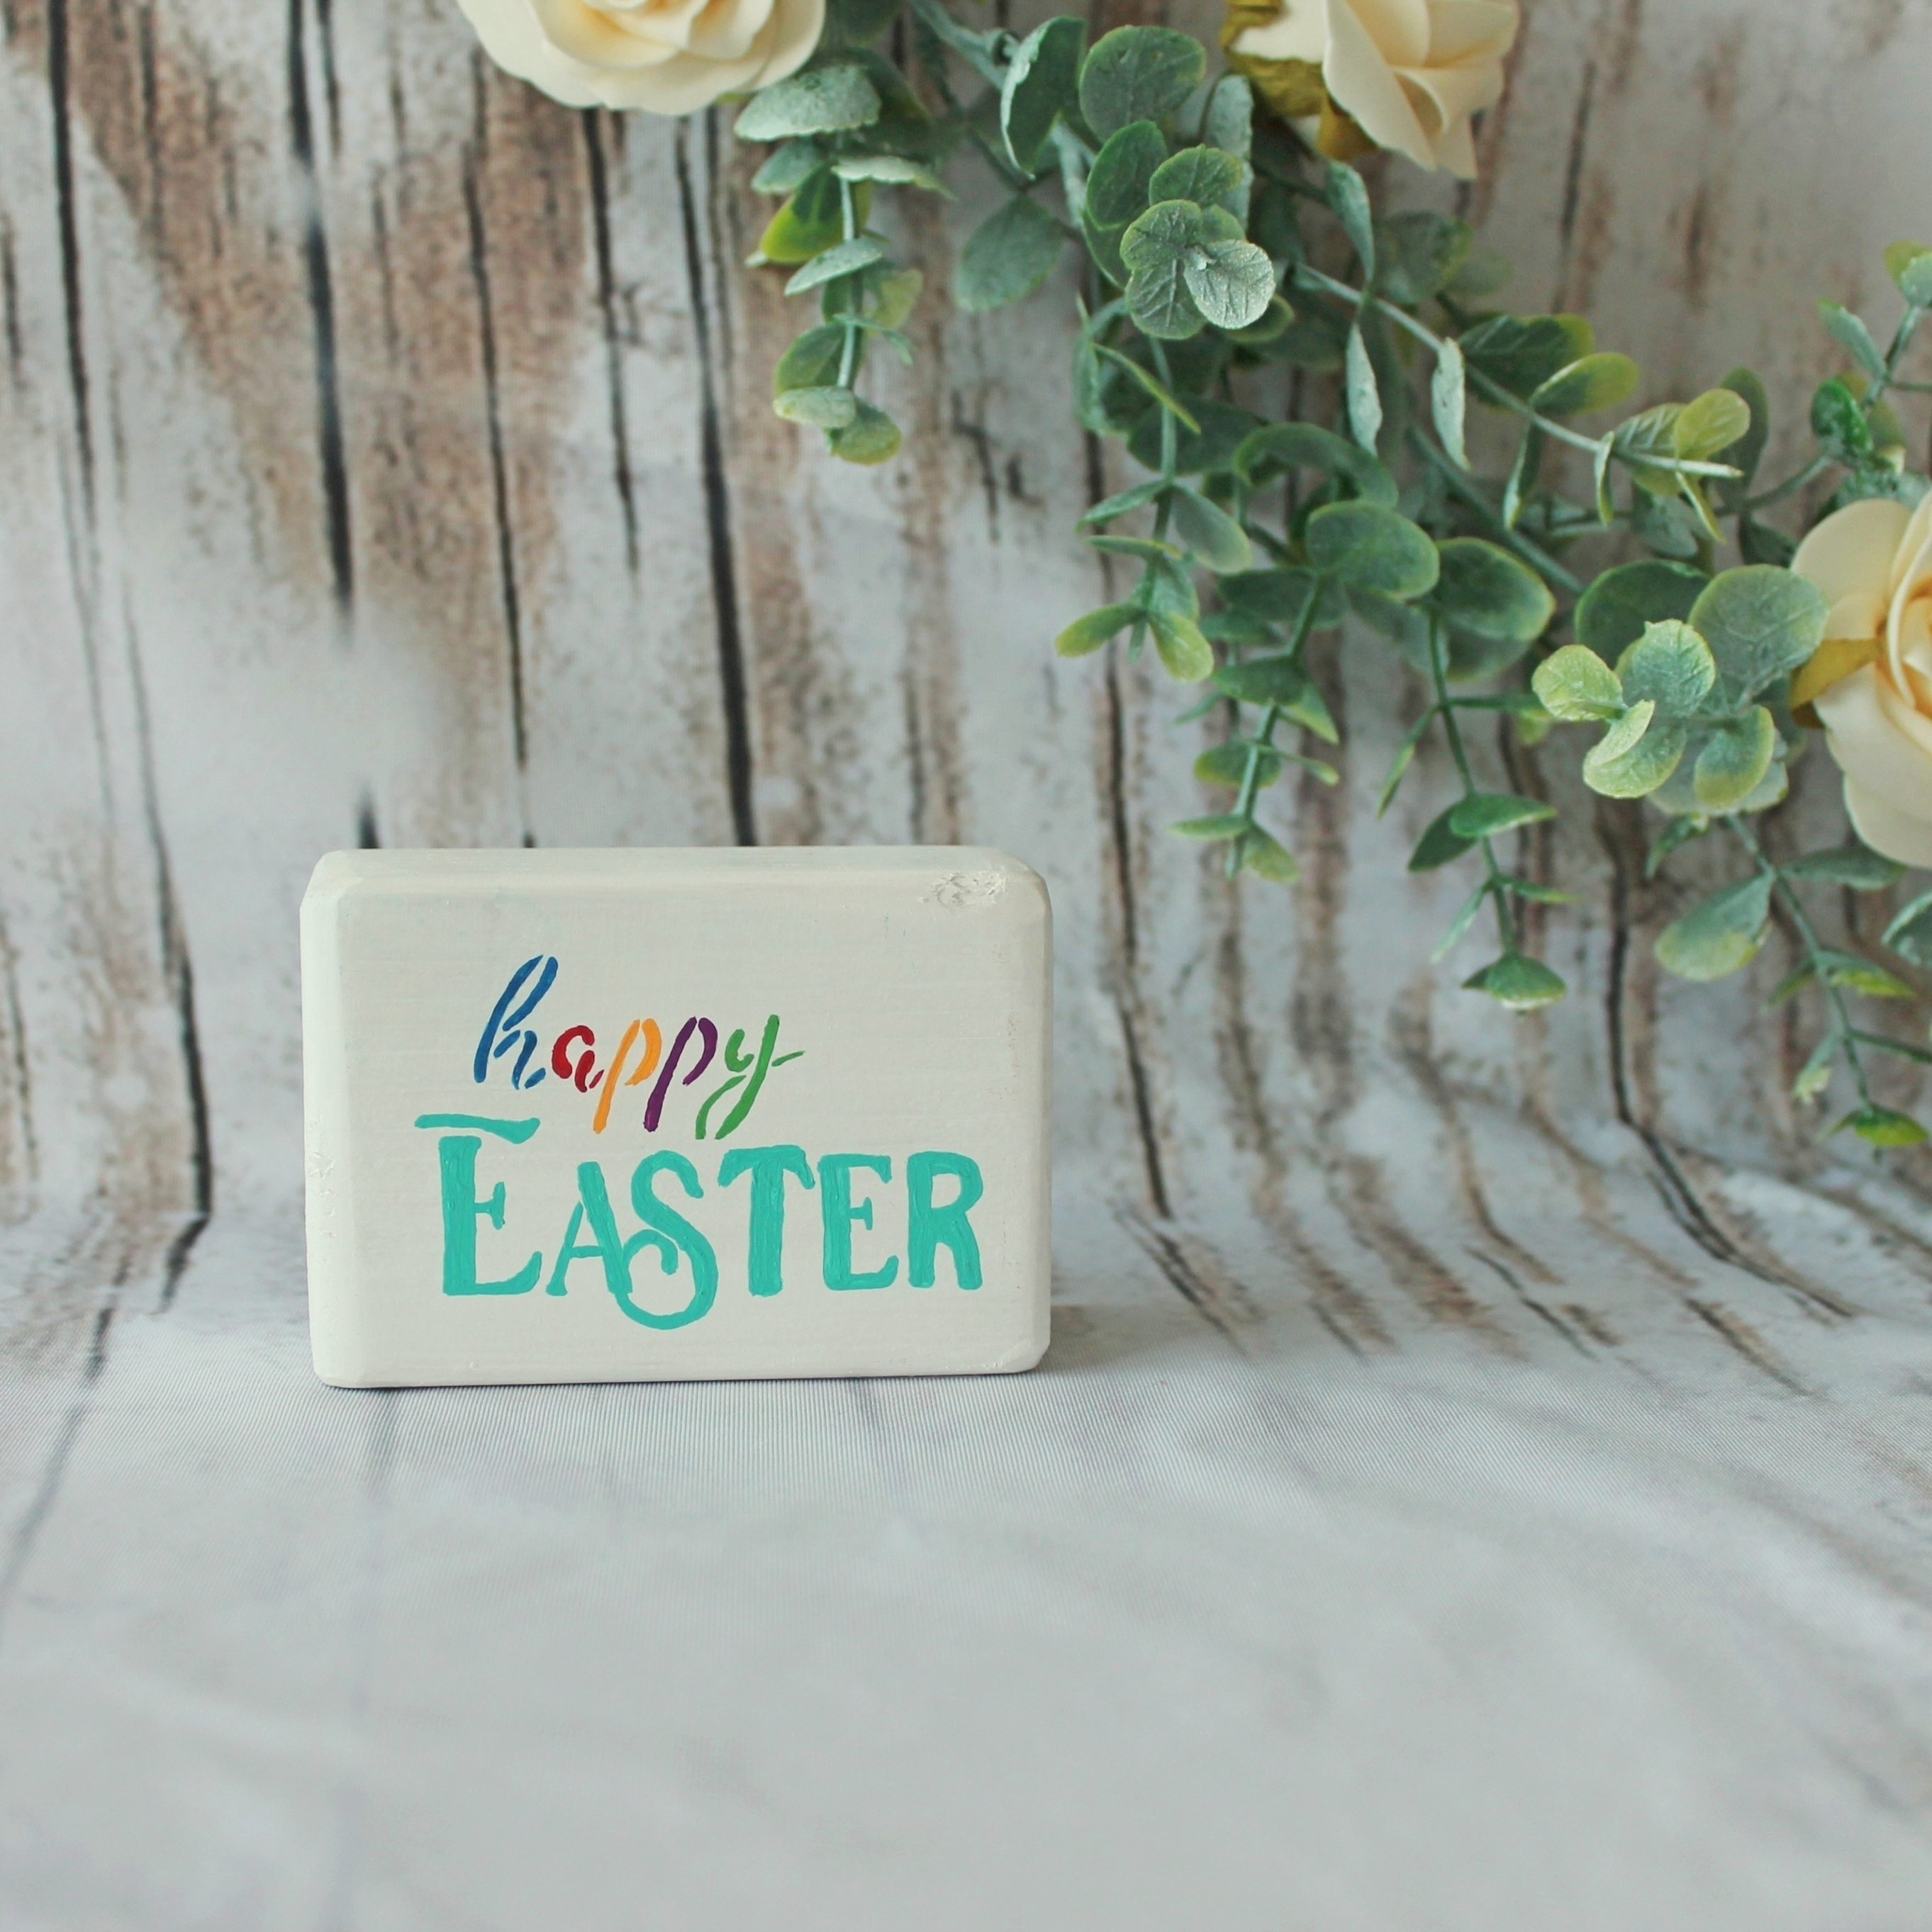 Happy Easter Small Block